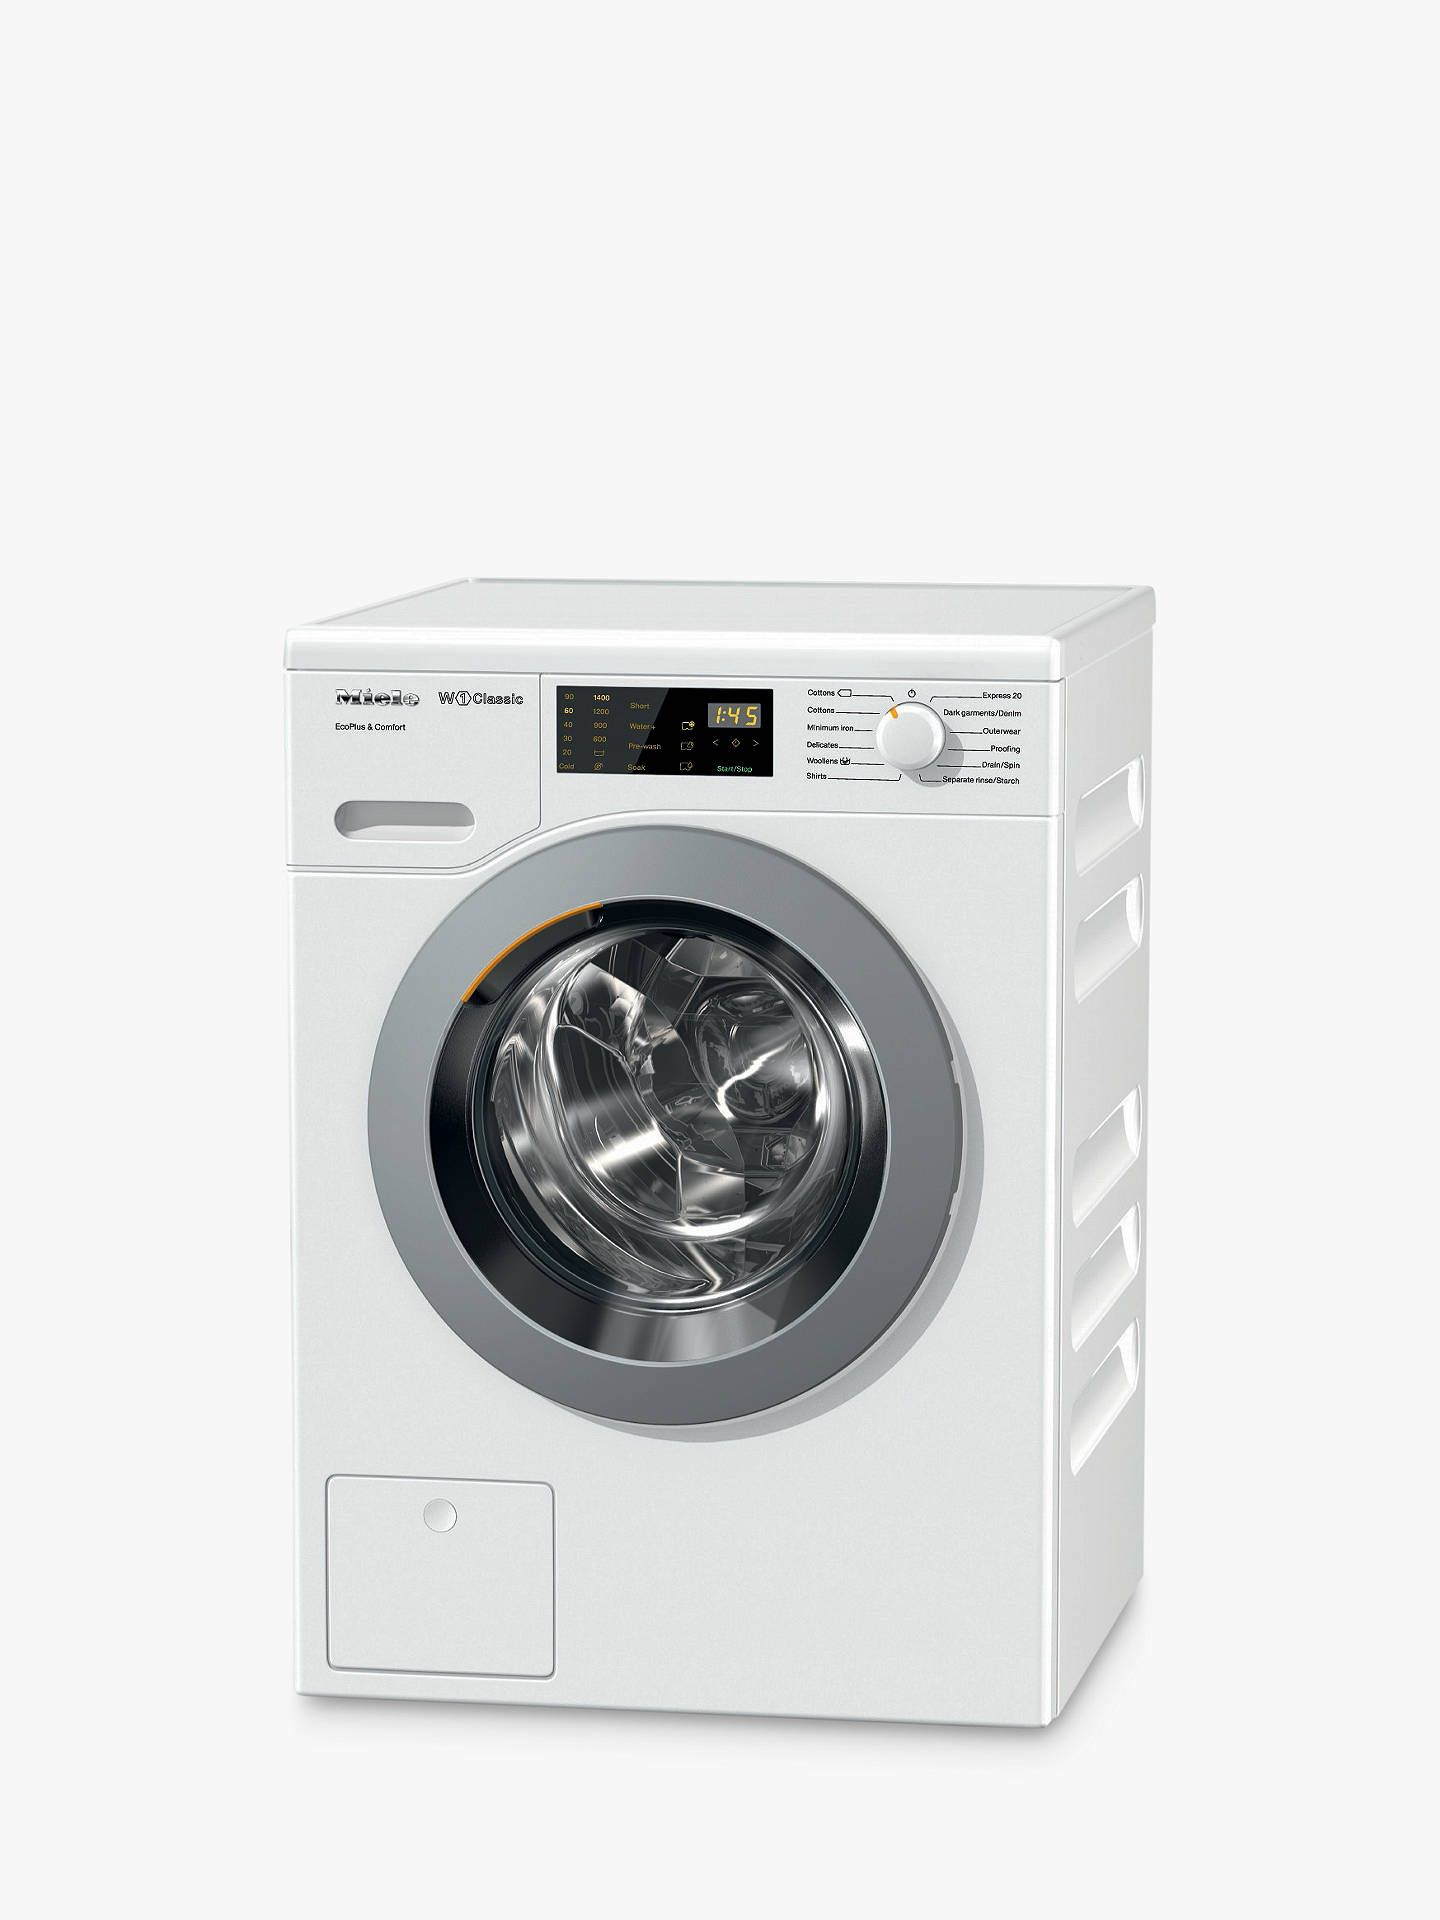 Lave Linge Top Miele Miele Wdd020 Freestanding Eco Washing Machine 8kg Load A